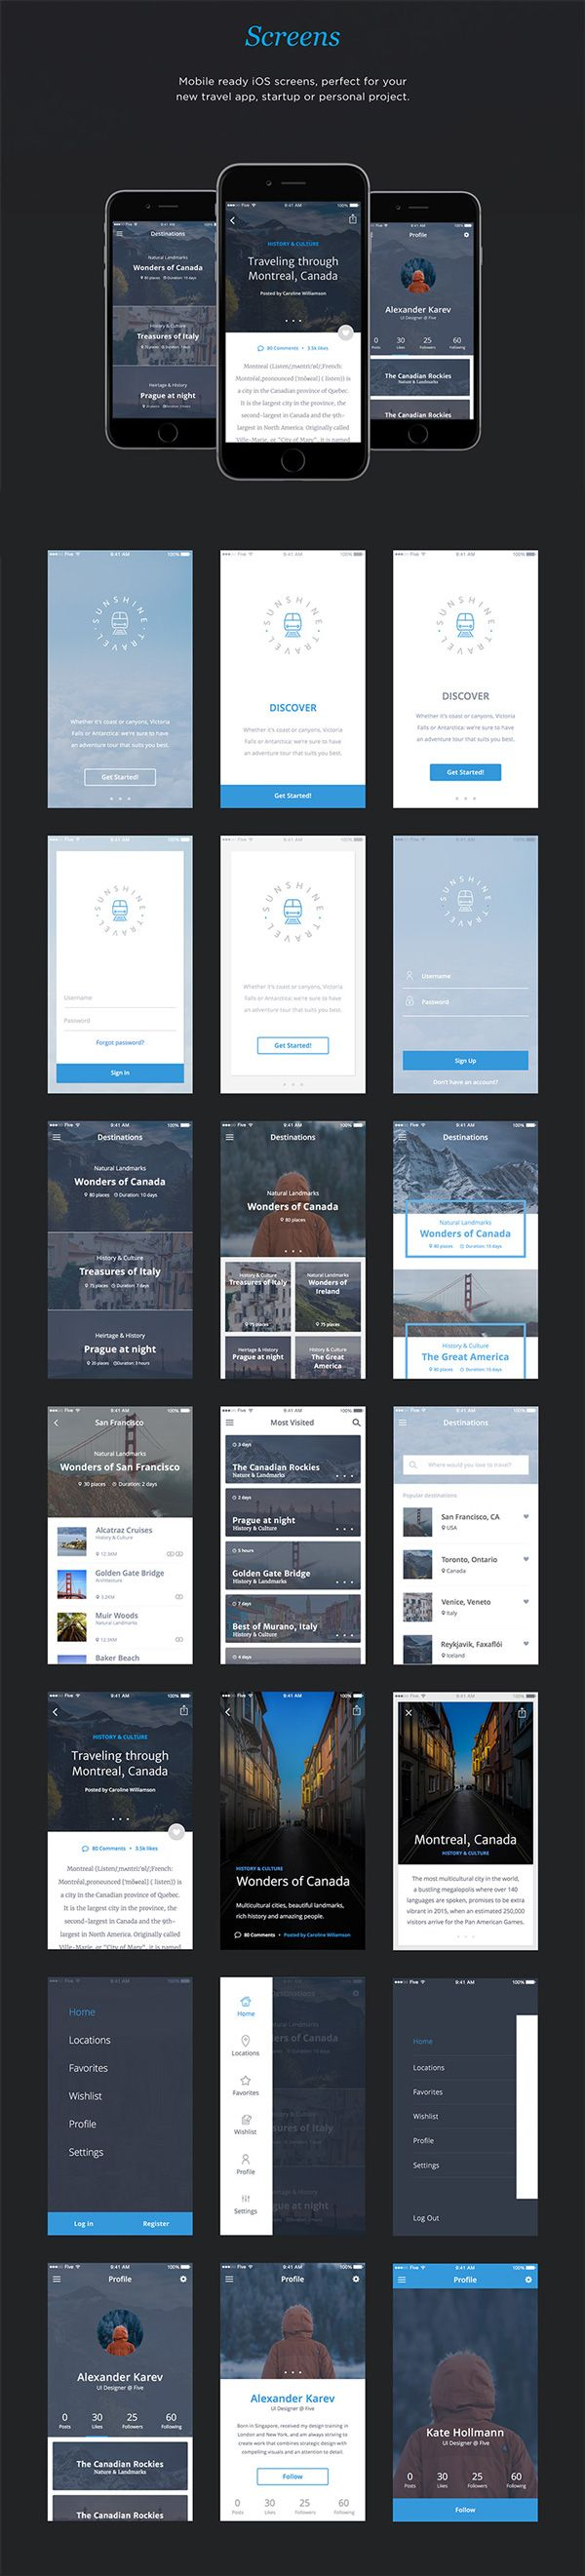 Free Download : Travel App UI Kit (50 screens)